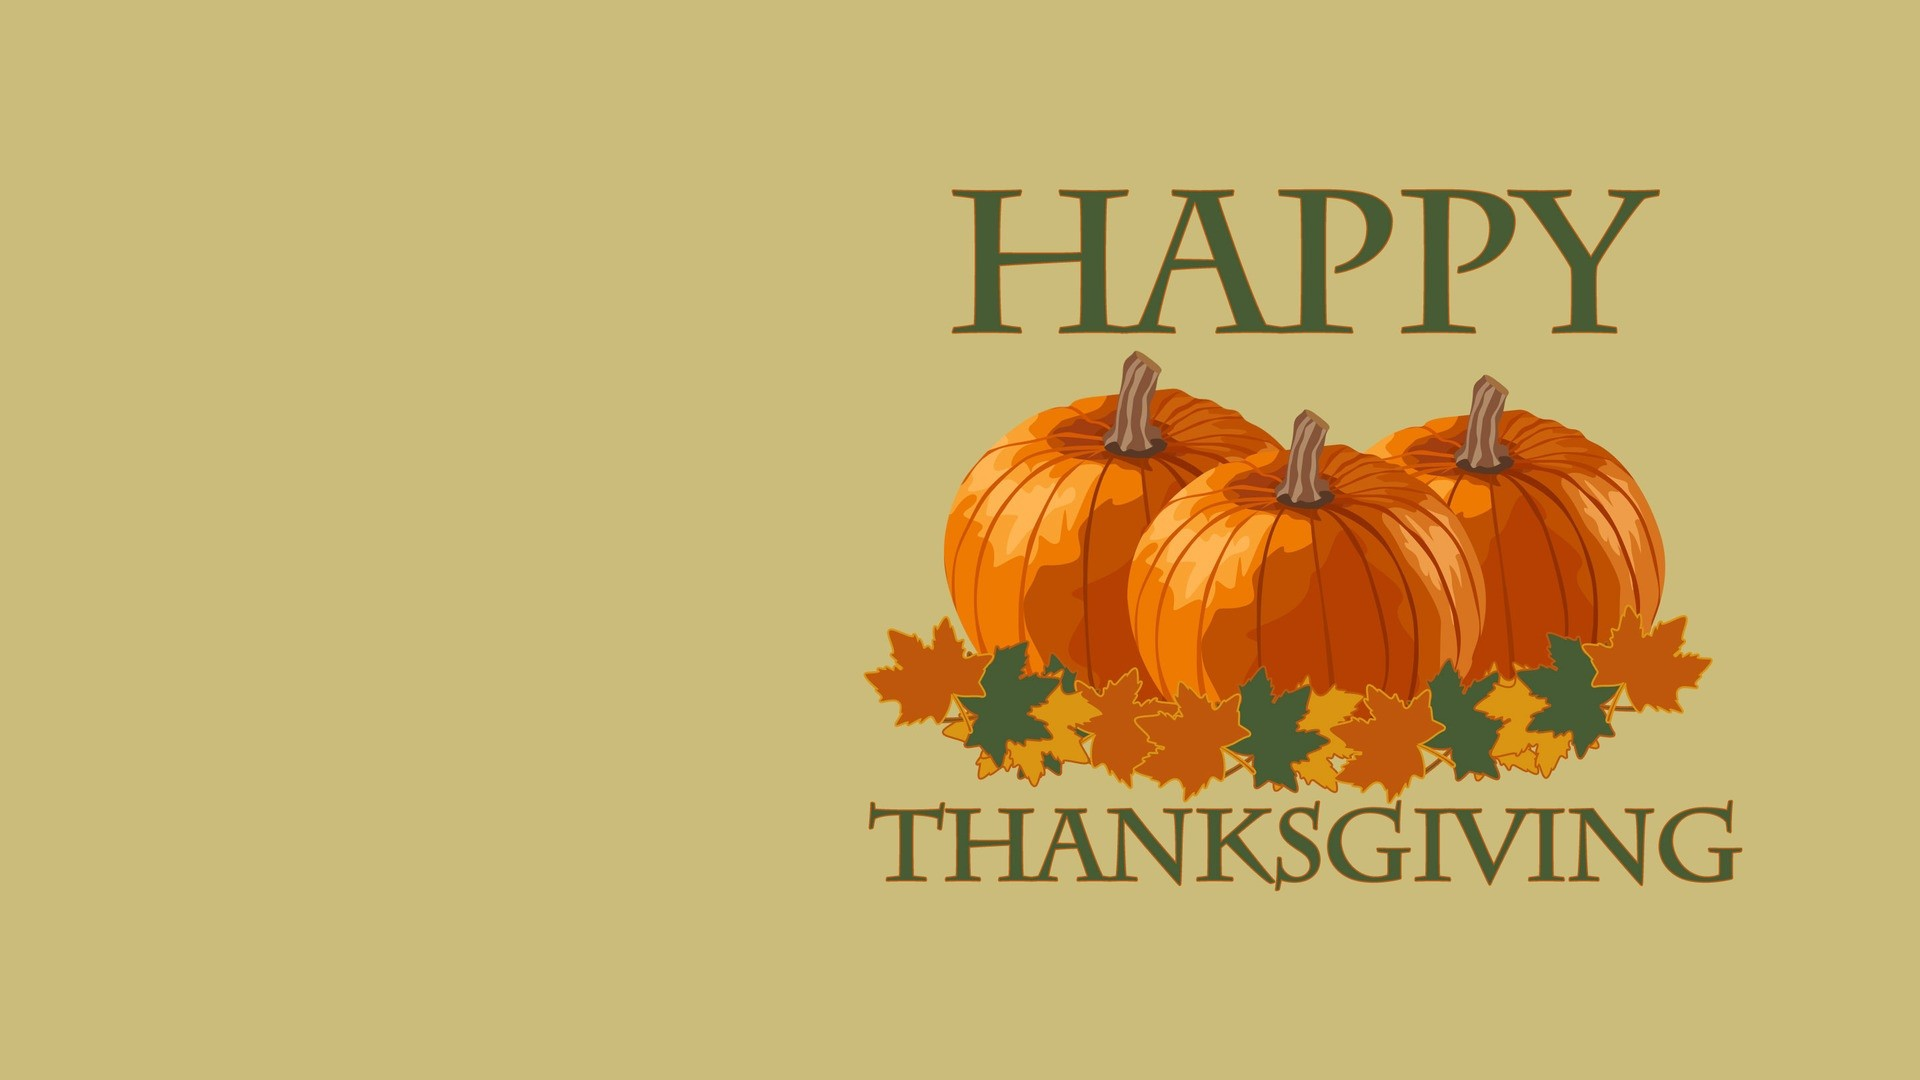 Thanksgiving snoopy wallpaper 45 images free thanksgiving backgrounds pixelstalk voltagebd Gallery